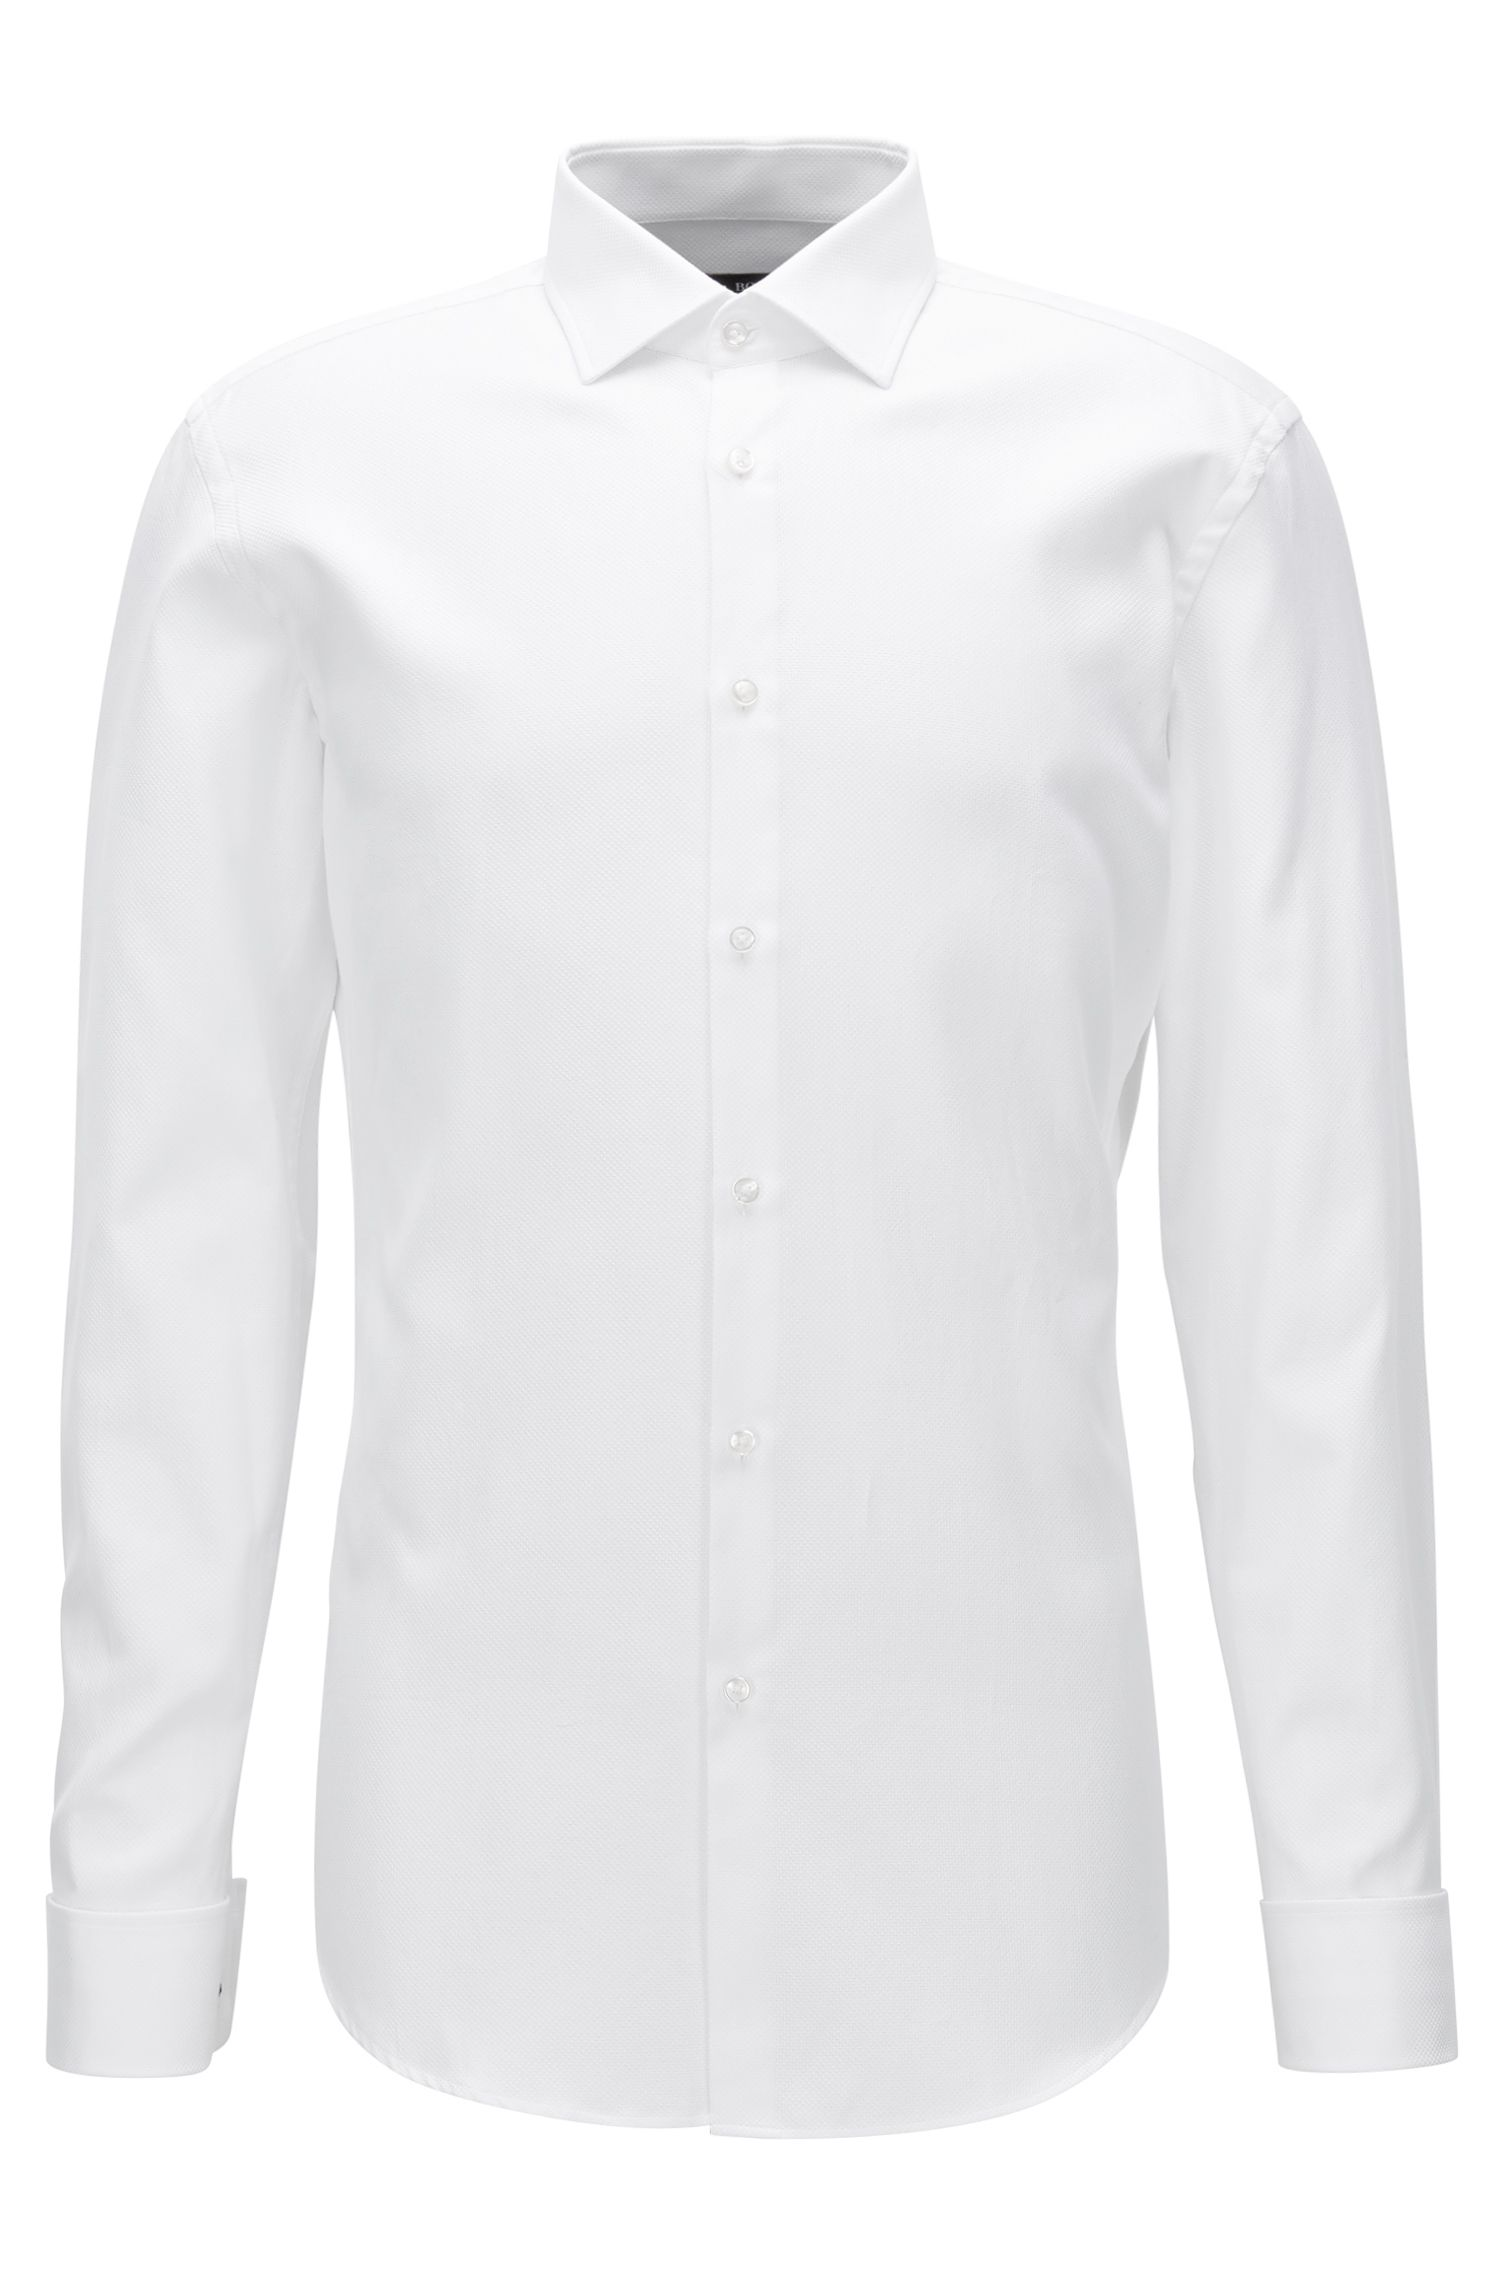 Geometric French Cuff Cotton Dress Shirt, Slim Fit | Jacques